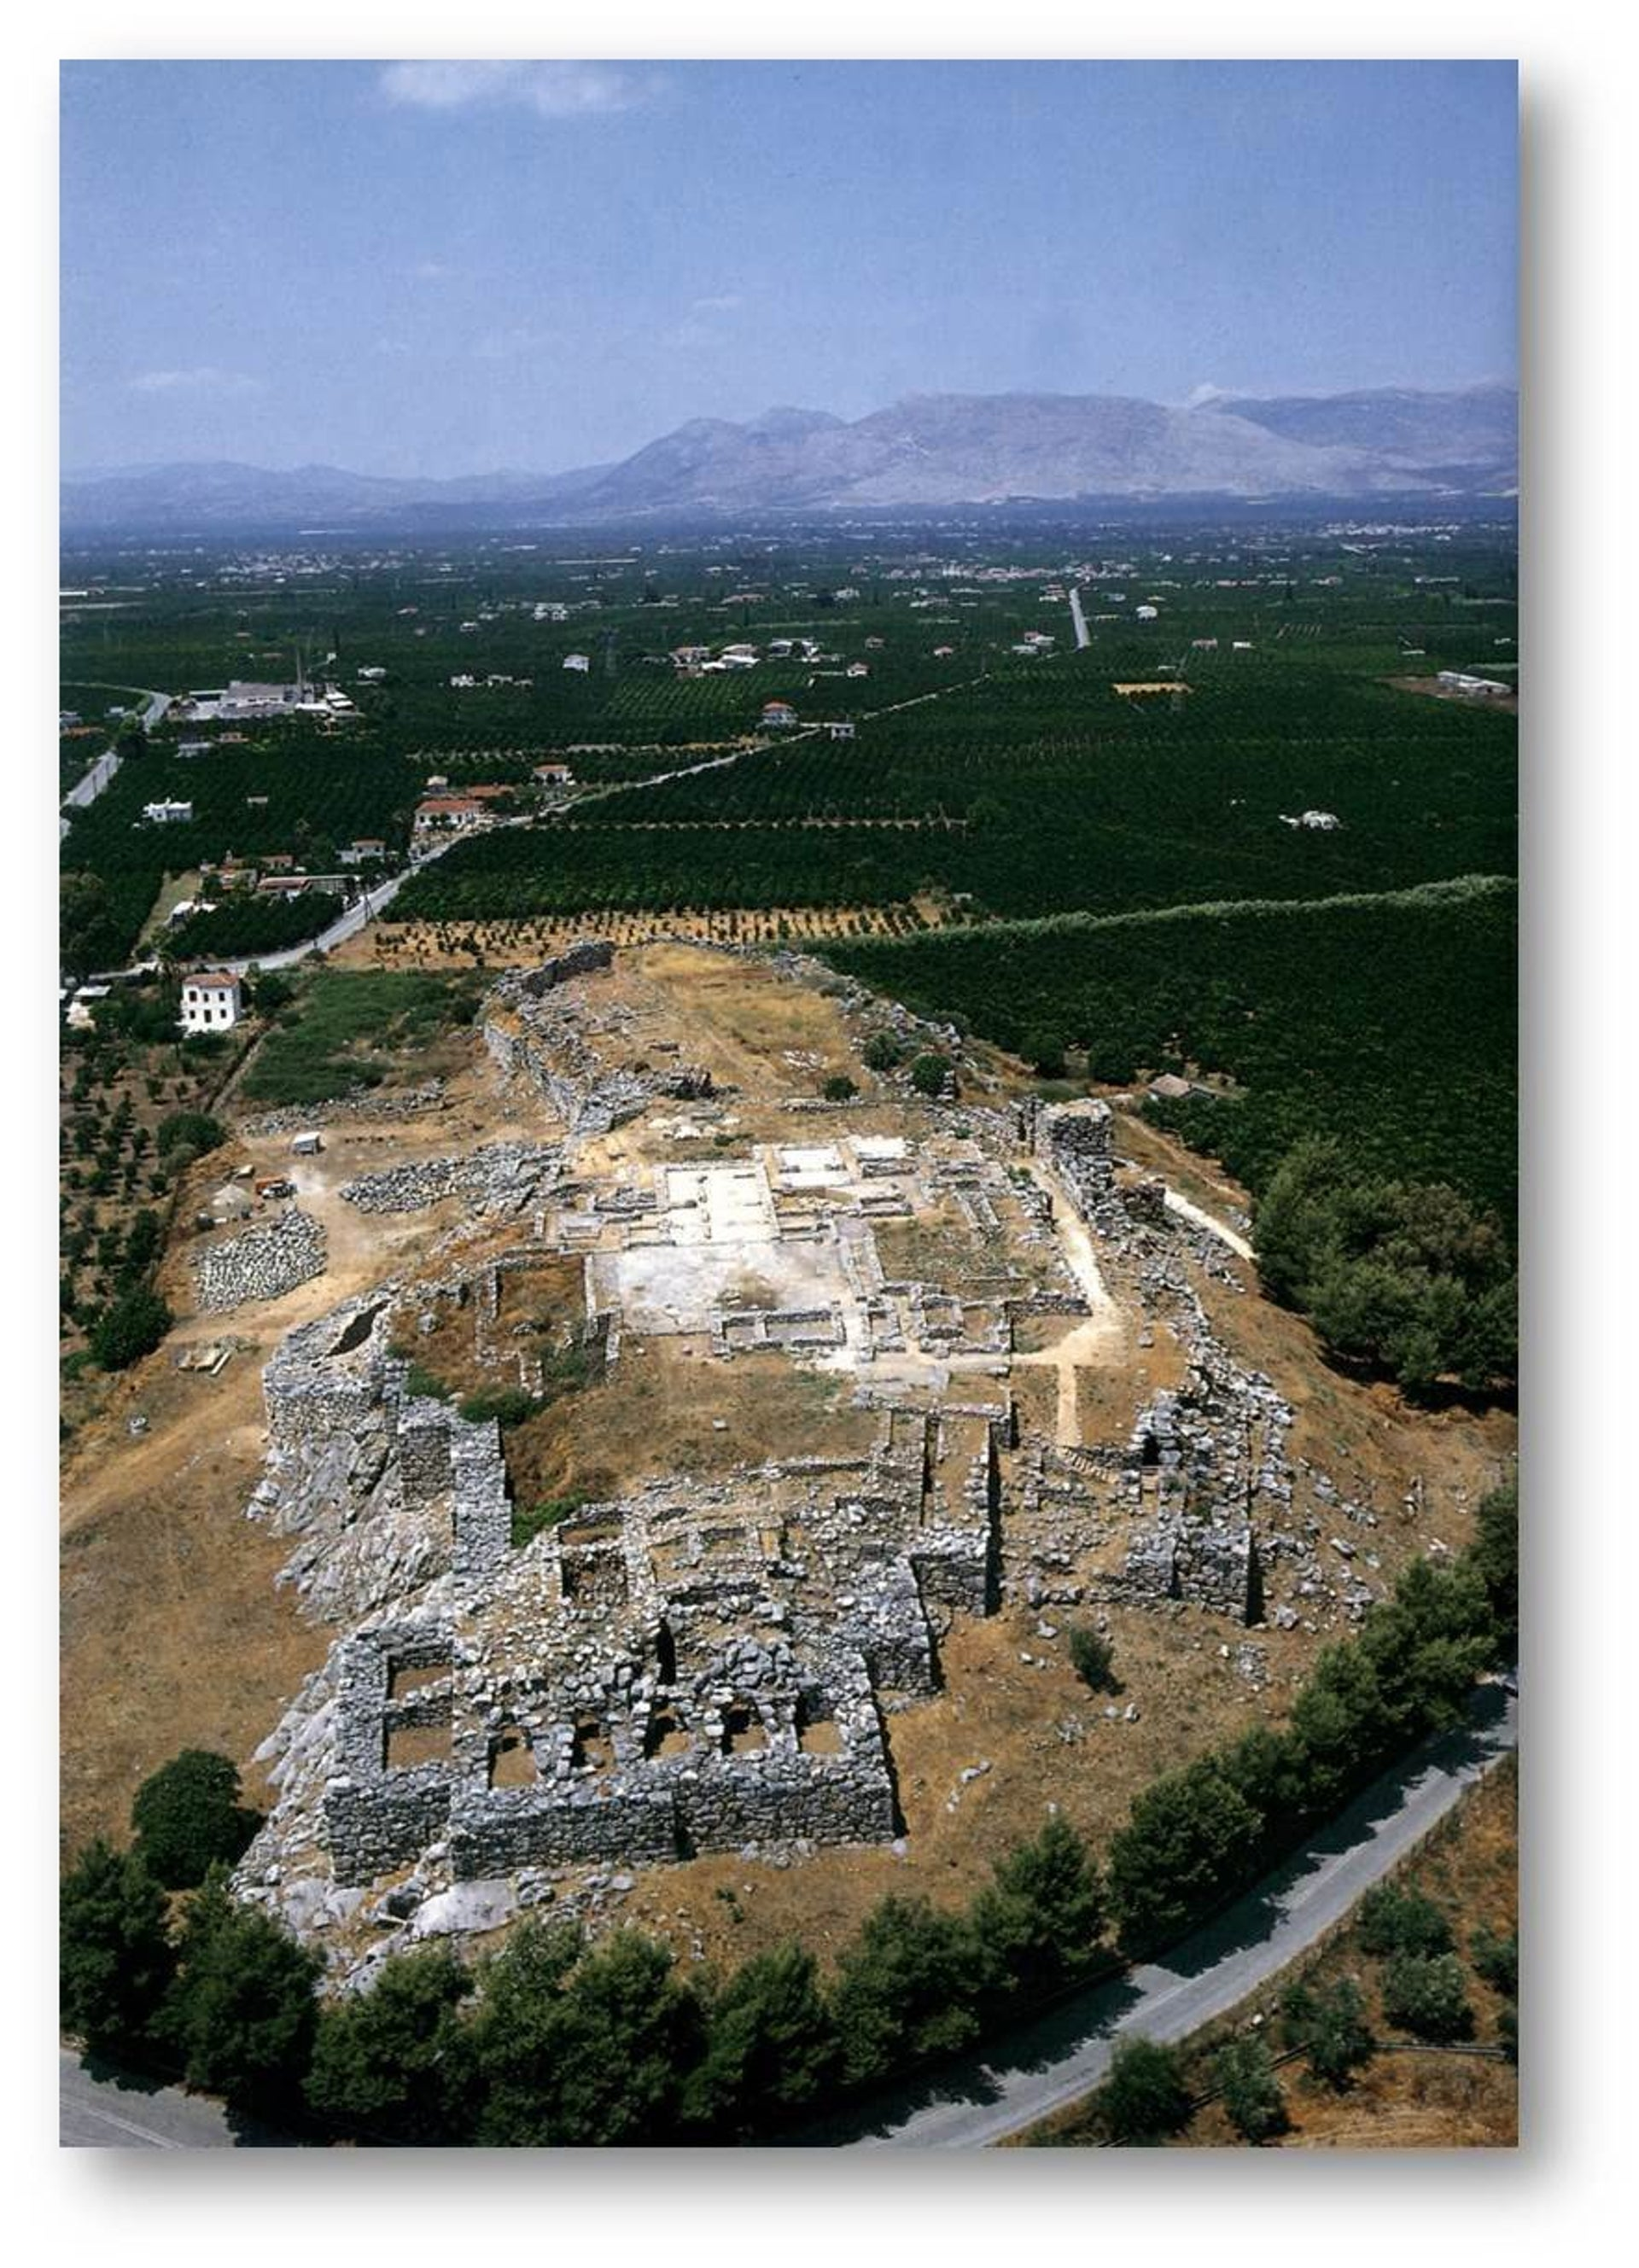 Aerial view of Tiryns, in the heartland of Mycenaean Greece